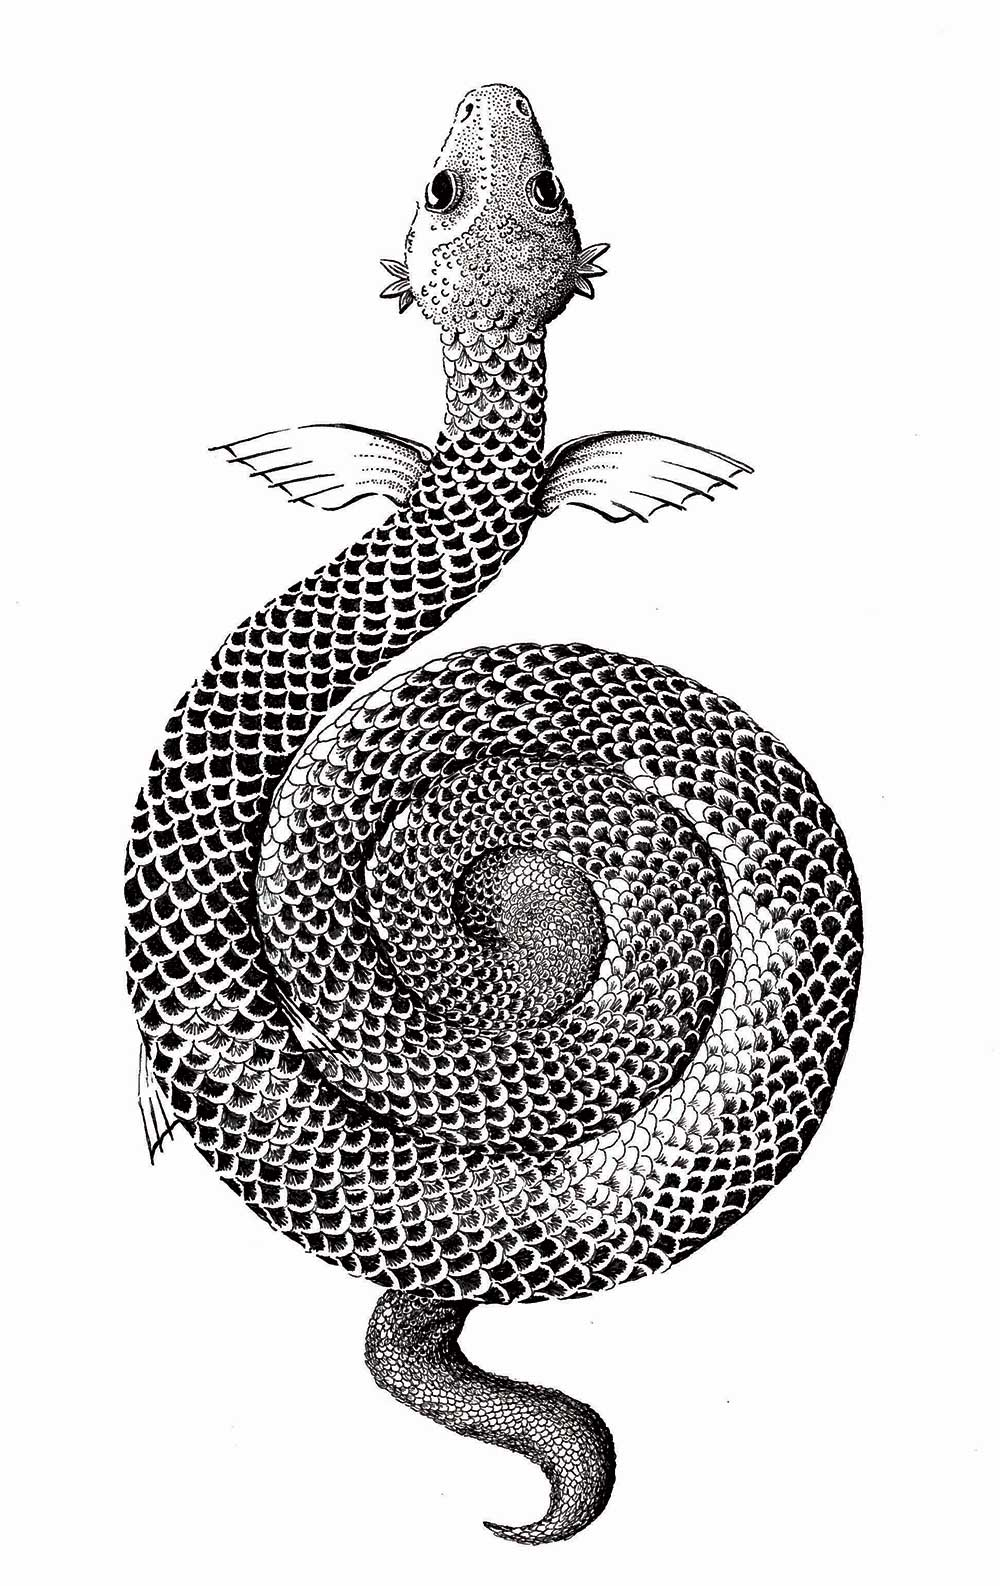 snake serpent pen and ink illustration for dark lane anthology by sally barnett